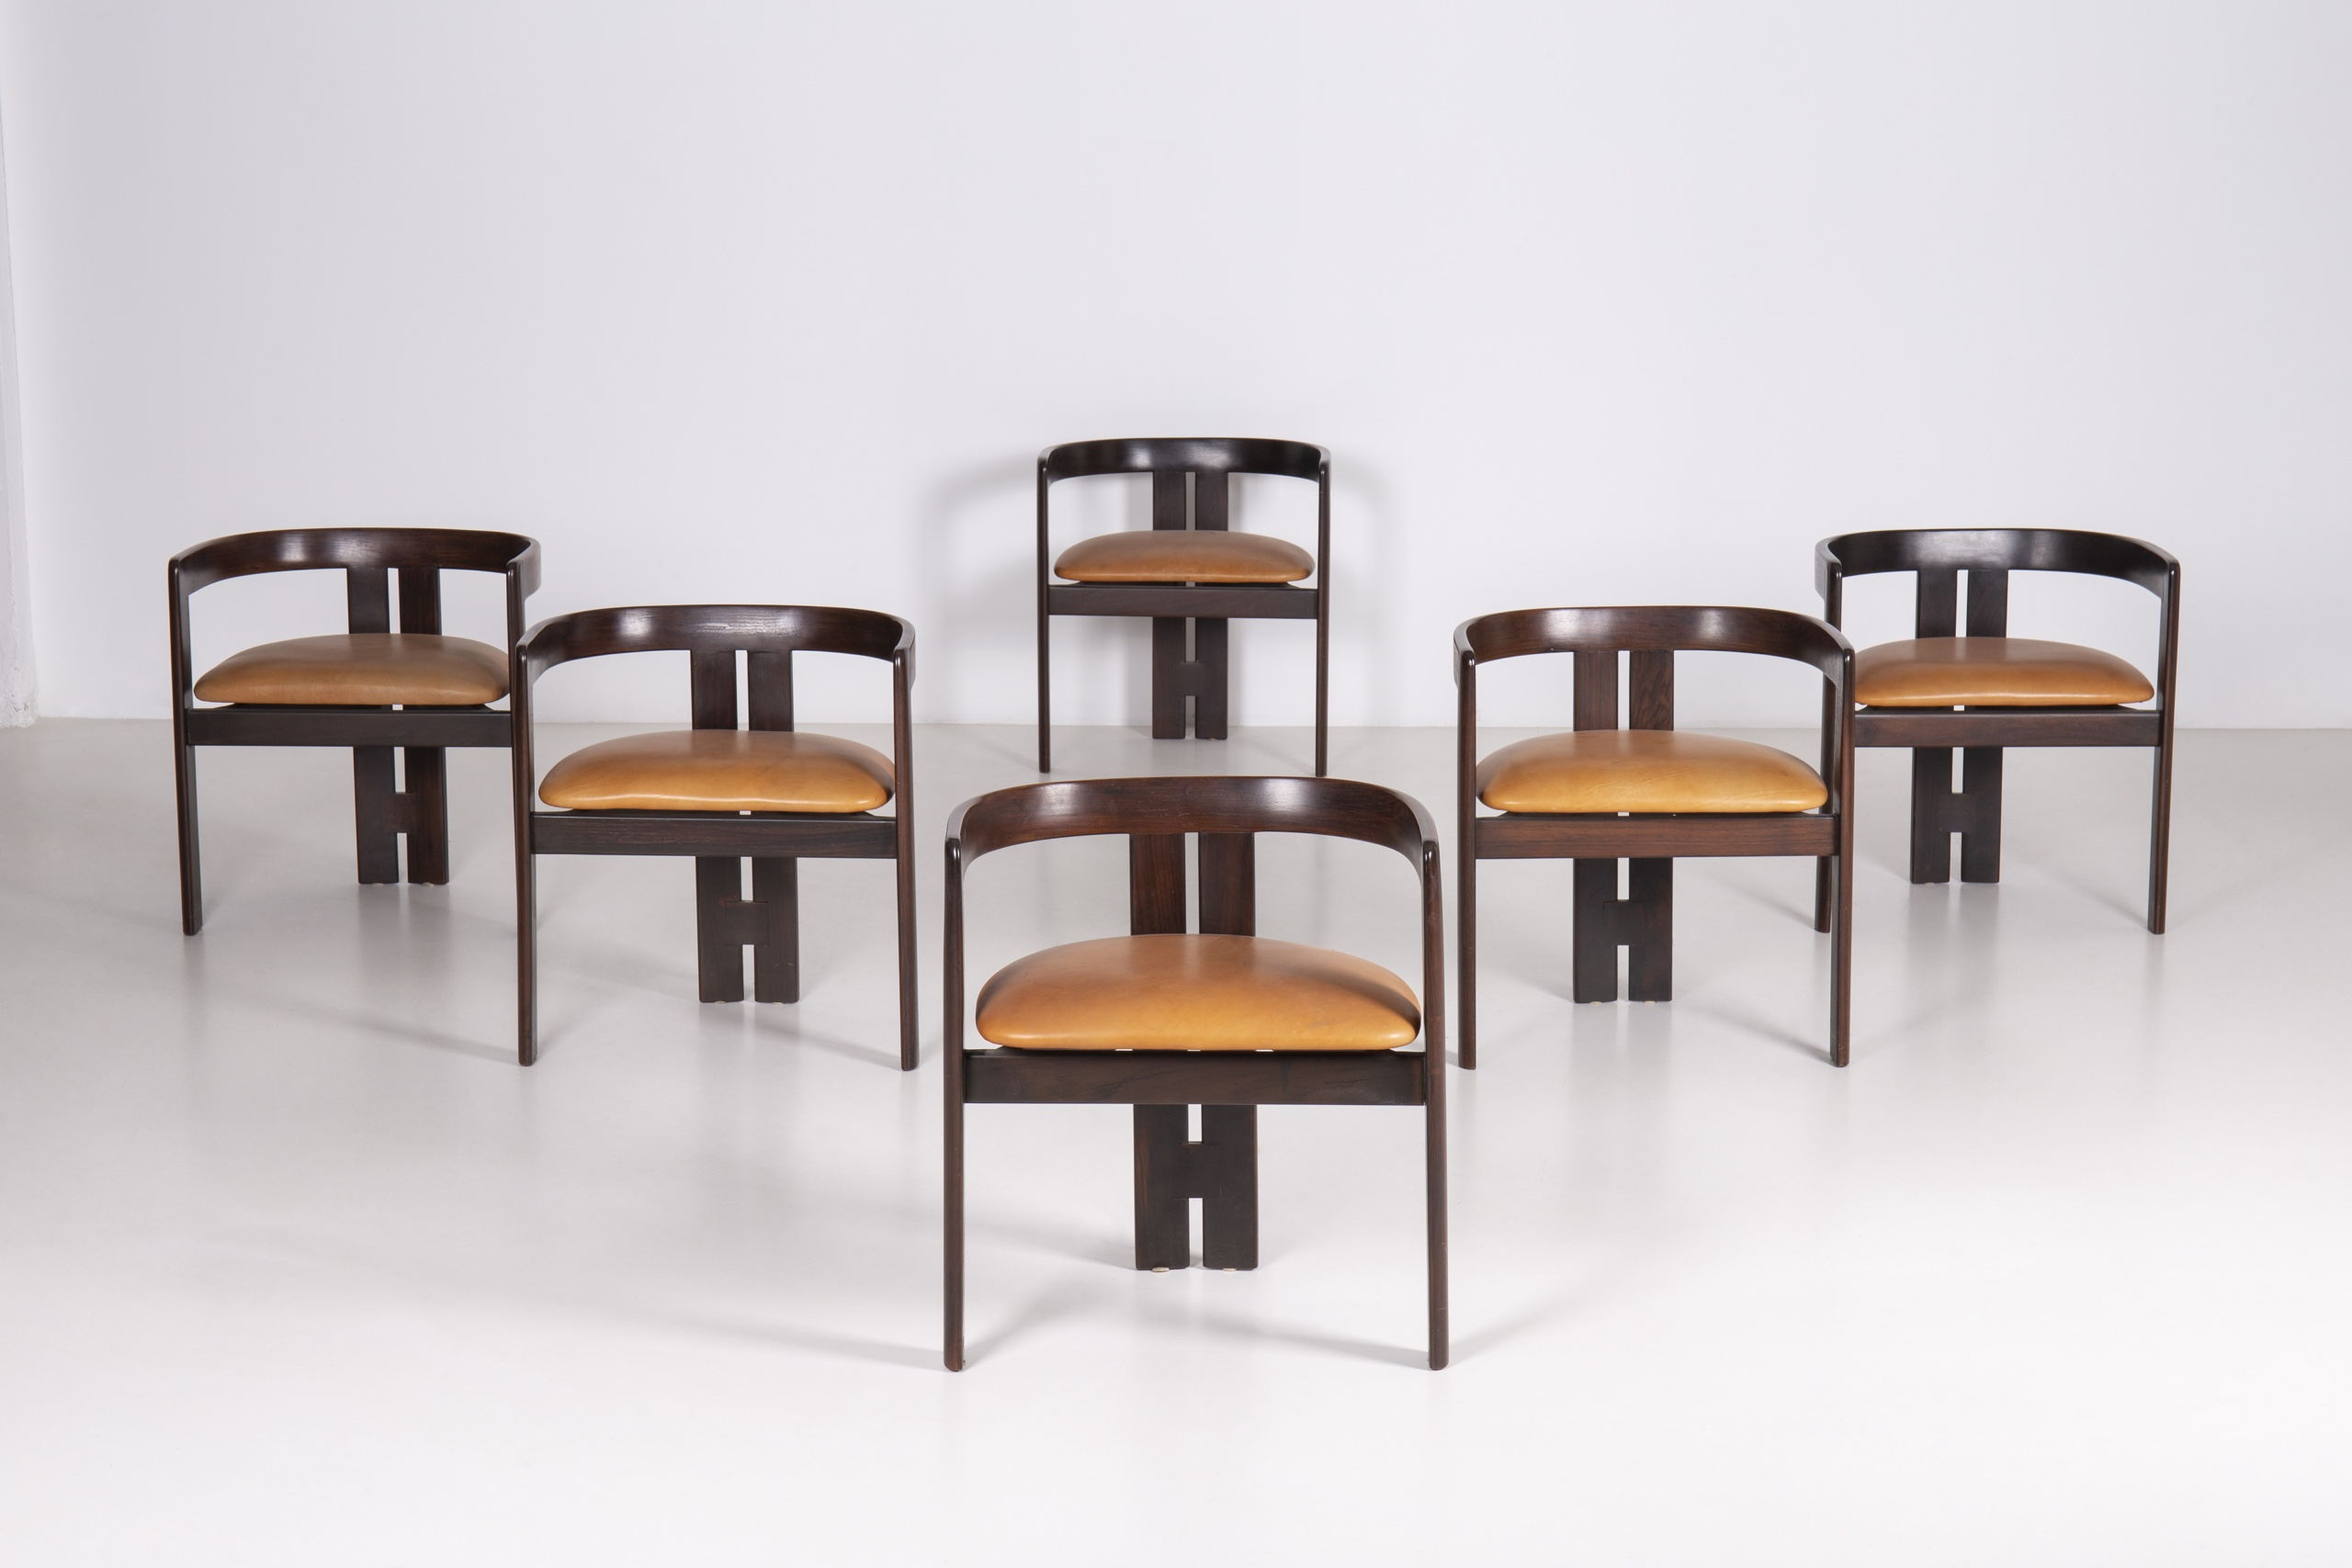 Pigreco chairs by Tobia Scarpa | Paradisoterrestre